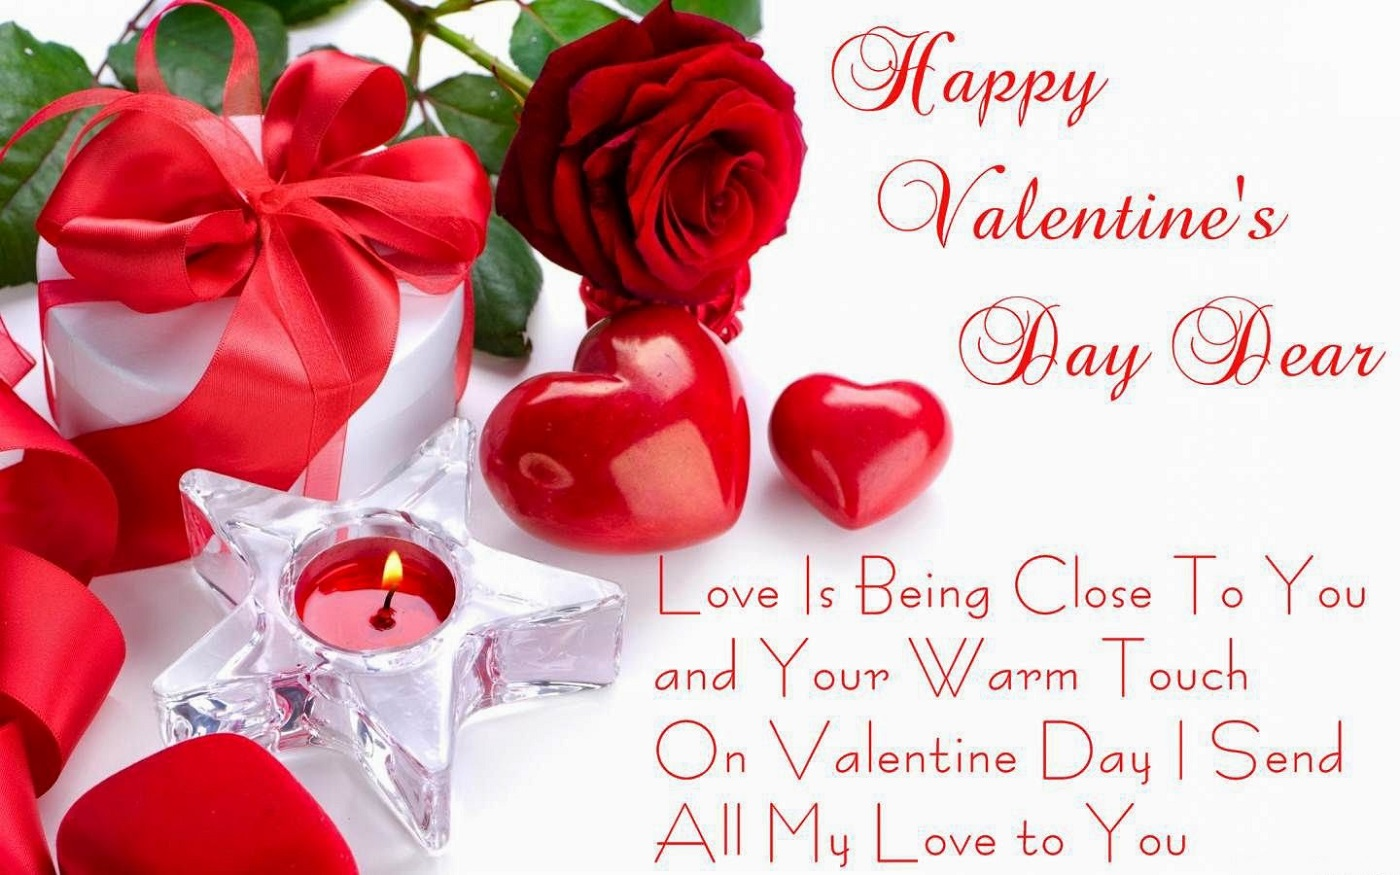 Valentines Love Quotes Valentine Quotes For Husband  Happy Valentines Day 2018Happy